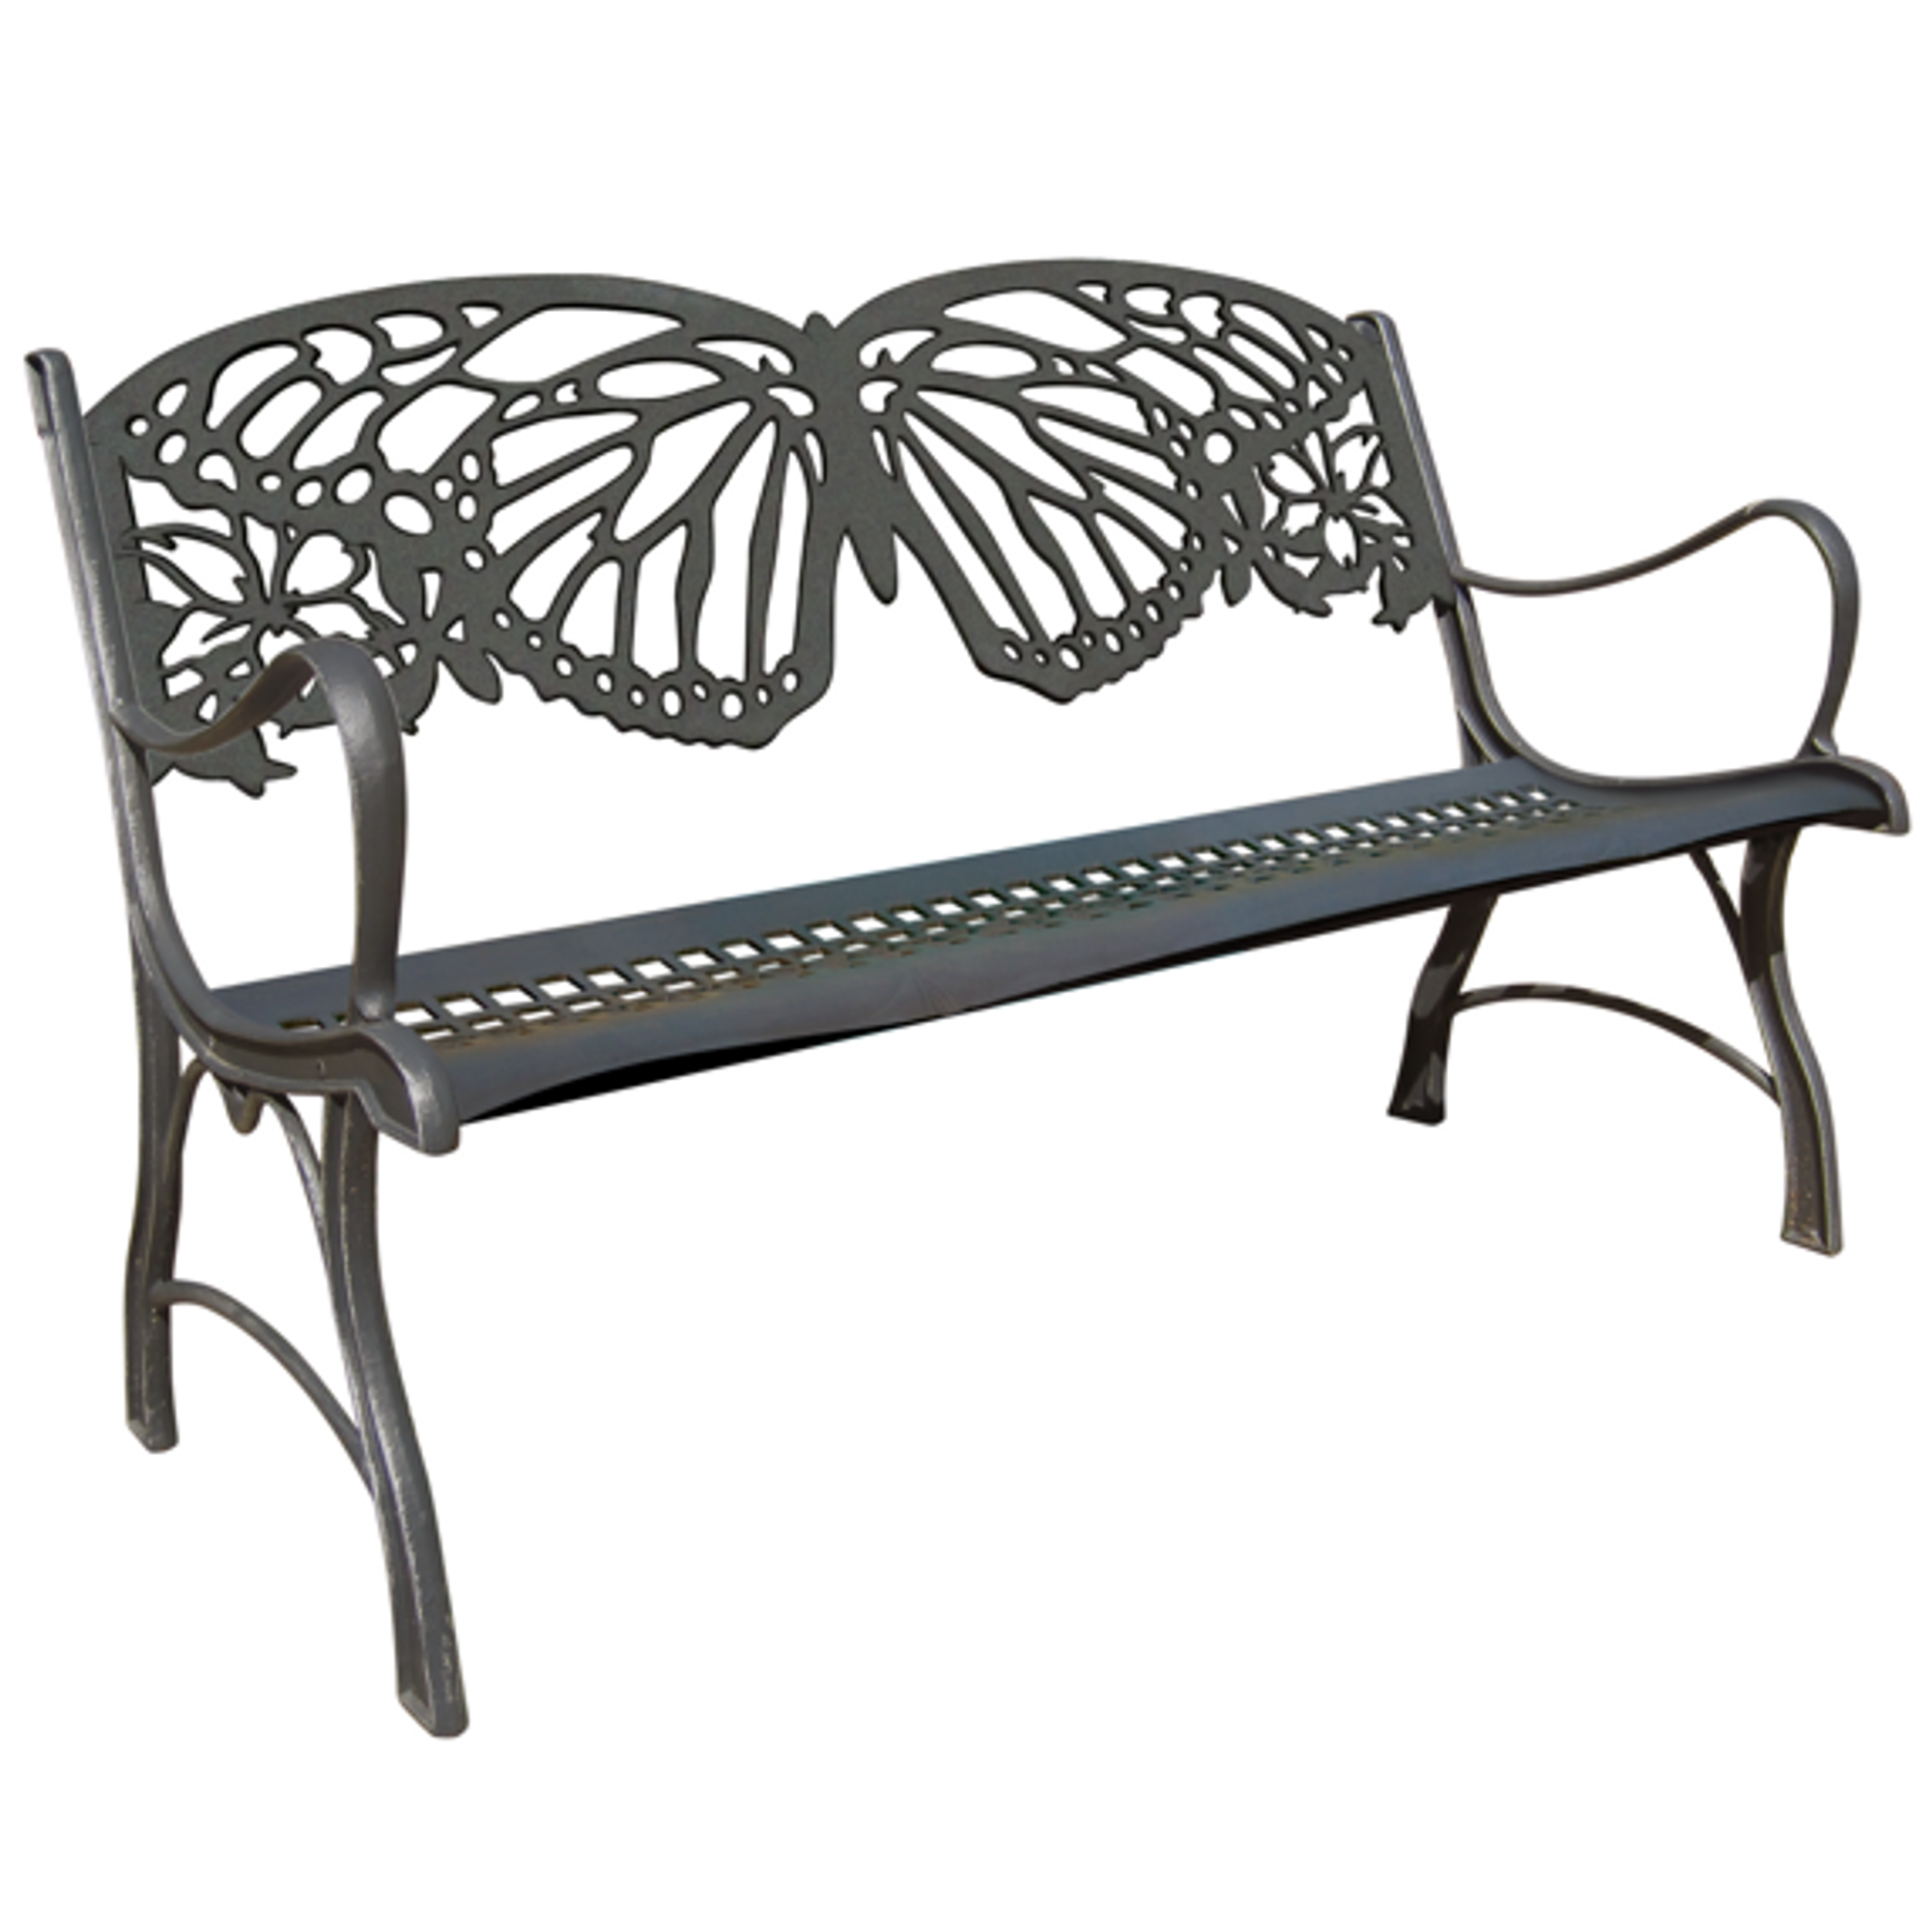 Superb Butterfly Cast Iron Garden Bench Gmtry Best Dining Table And Chair Ideas Images Gmtryco